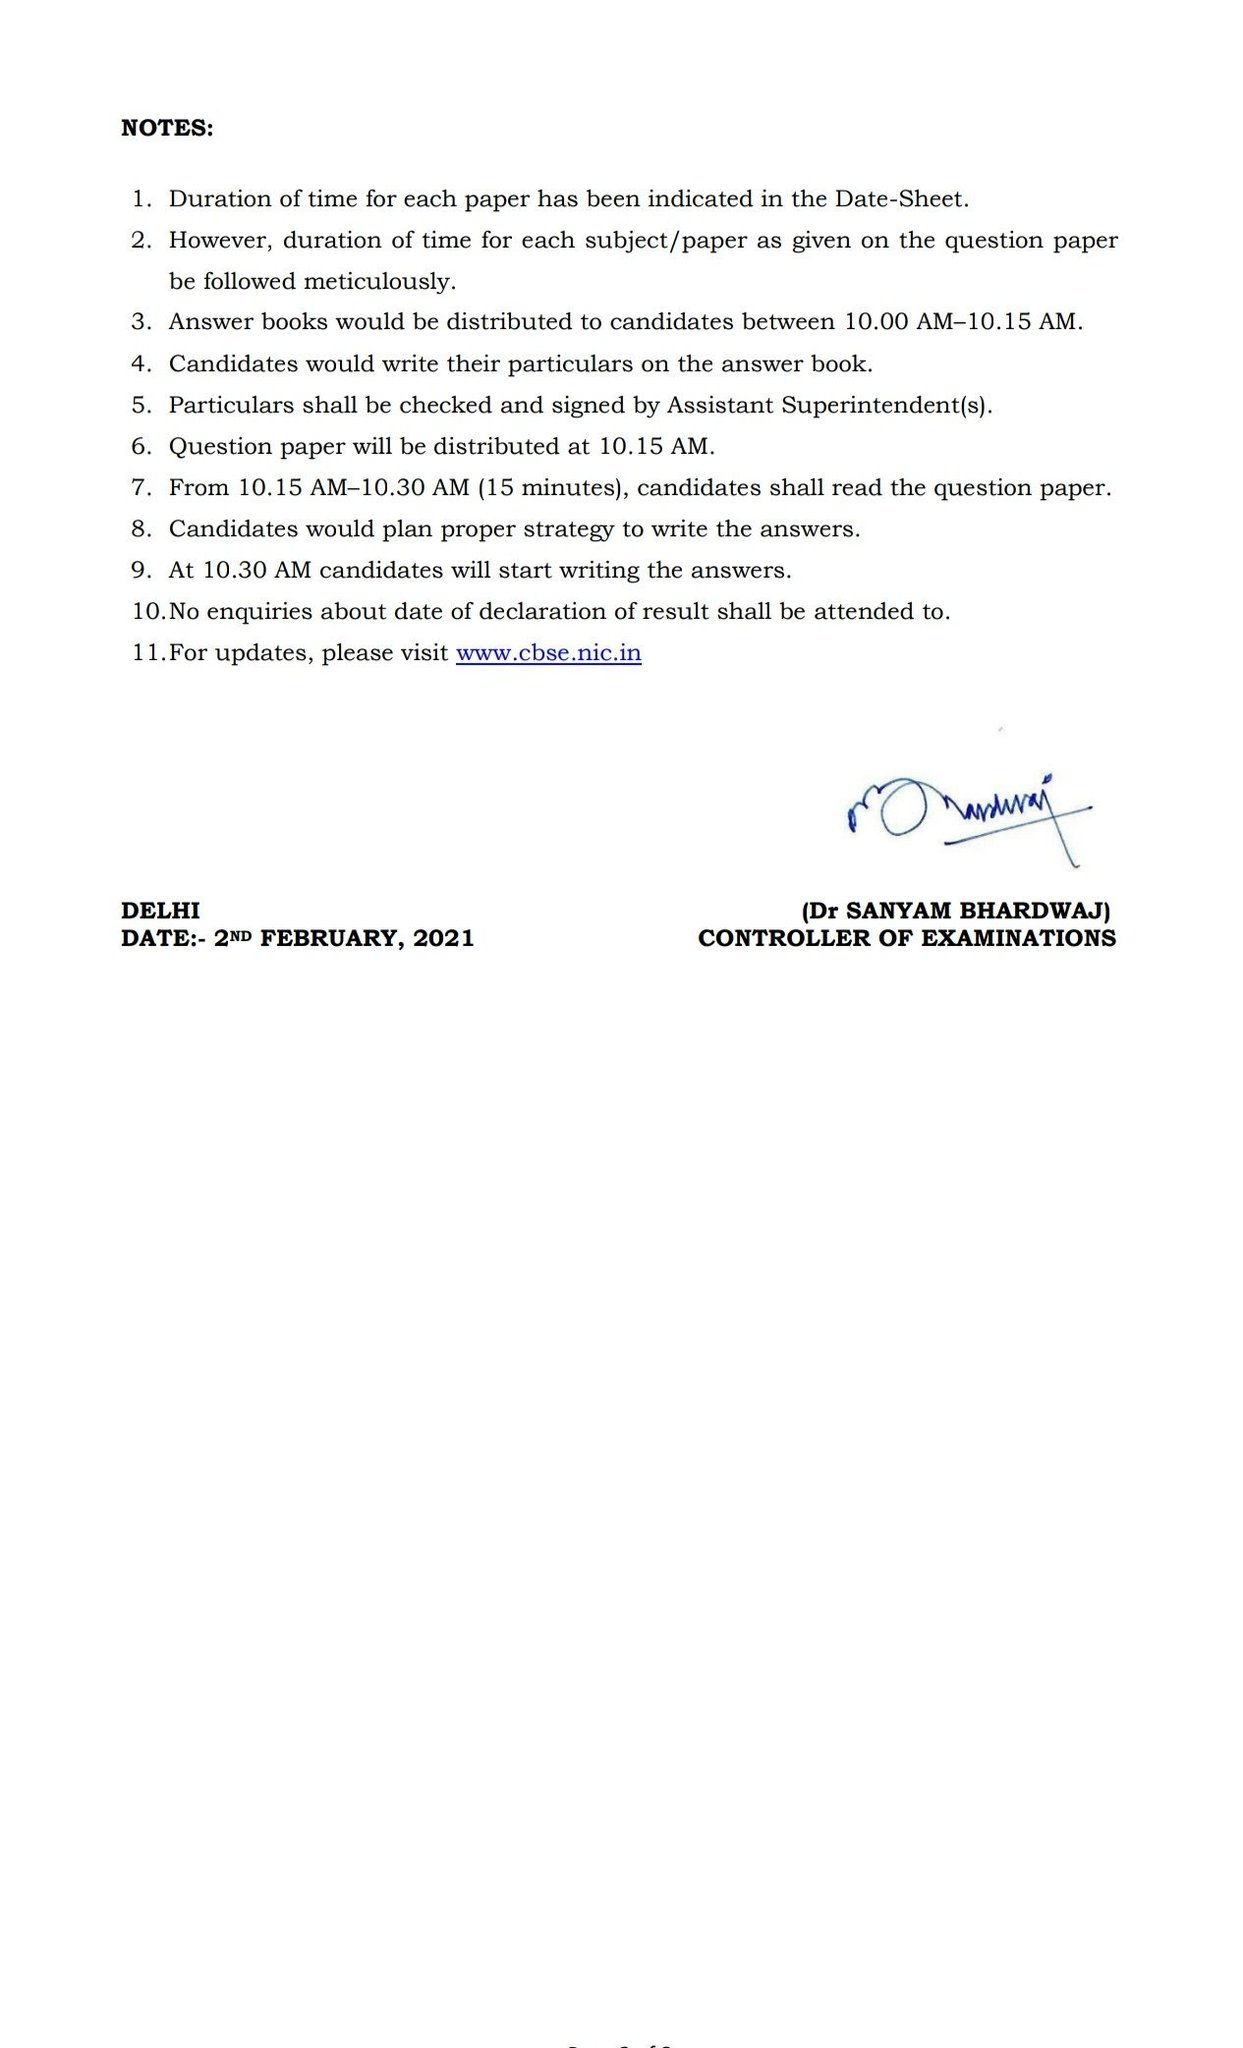 CBSE Board Exams 2021: Education Minister Ramesh Nishank Pokhriyal on Tuesday announced date sheet for CBSE Classes 10 and 12.